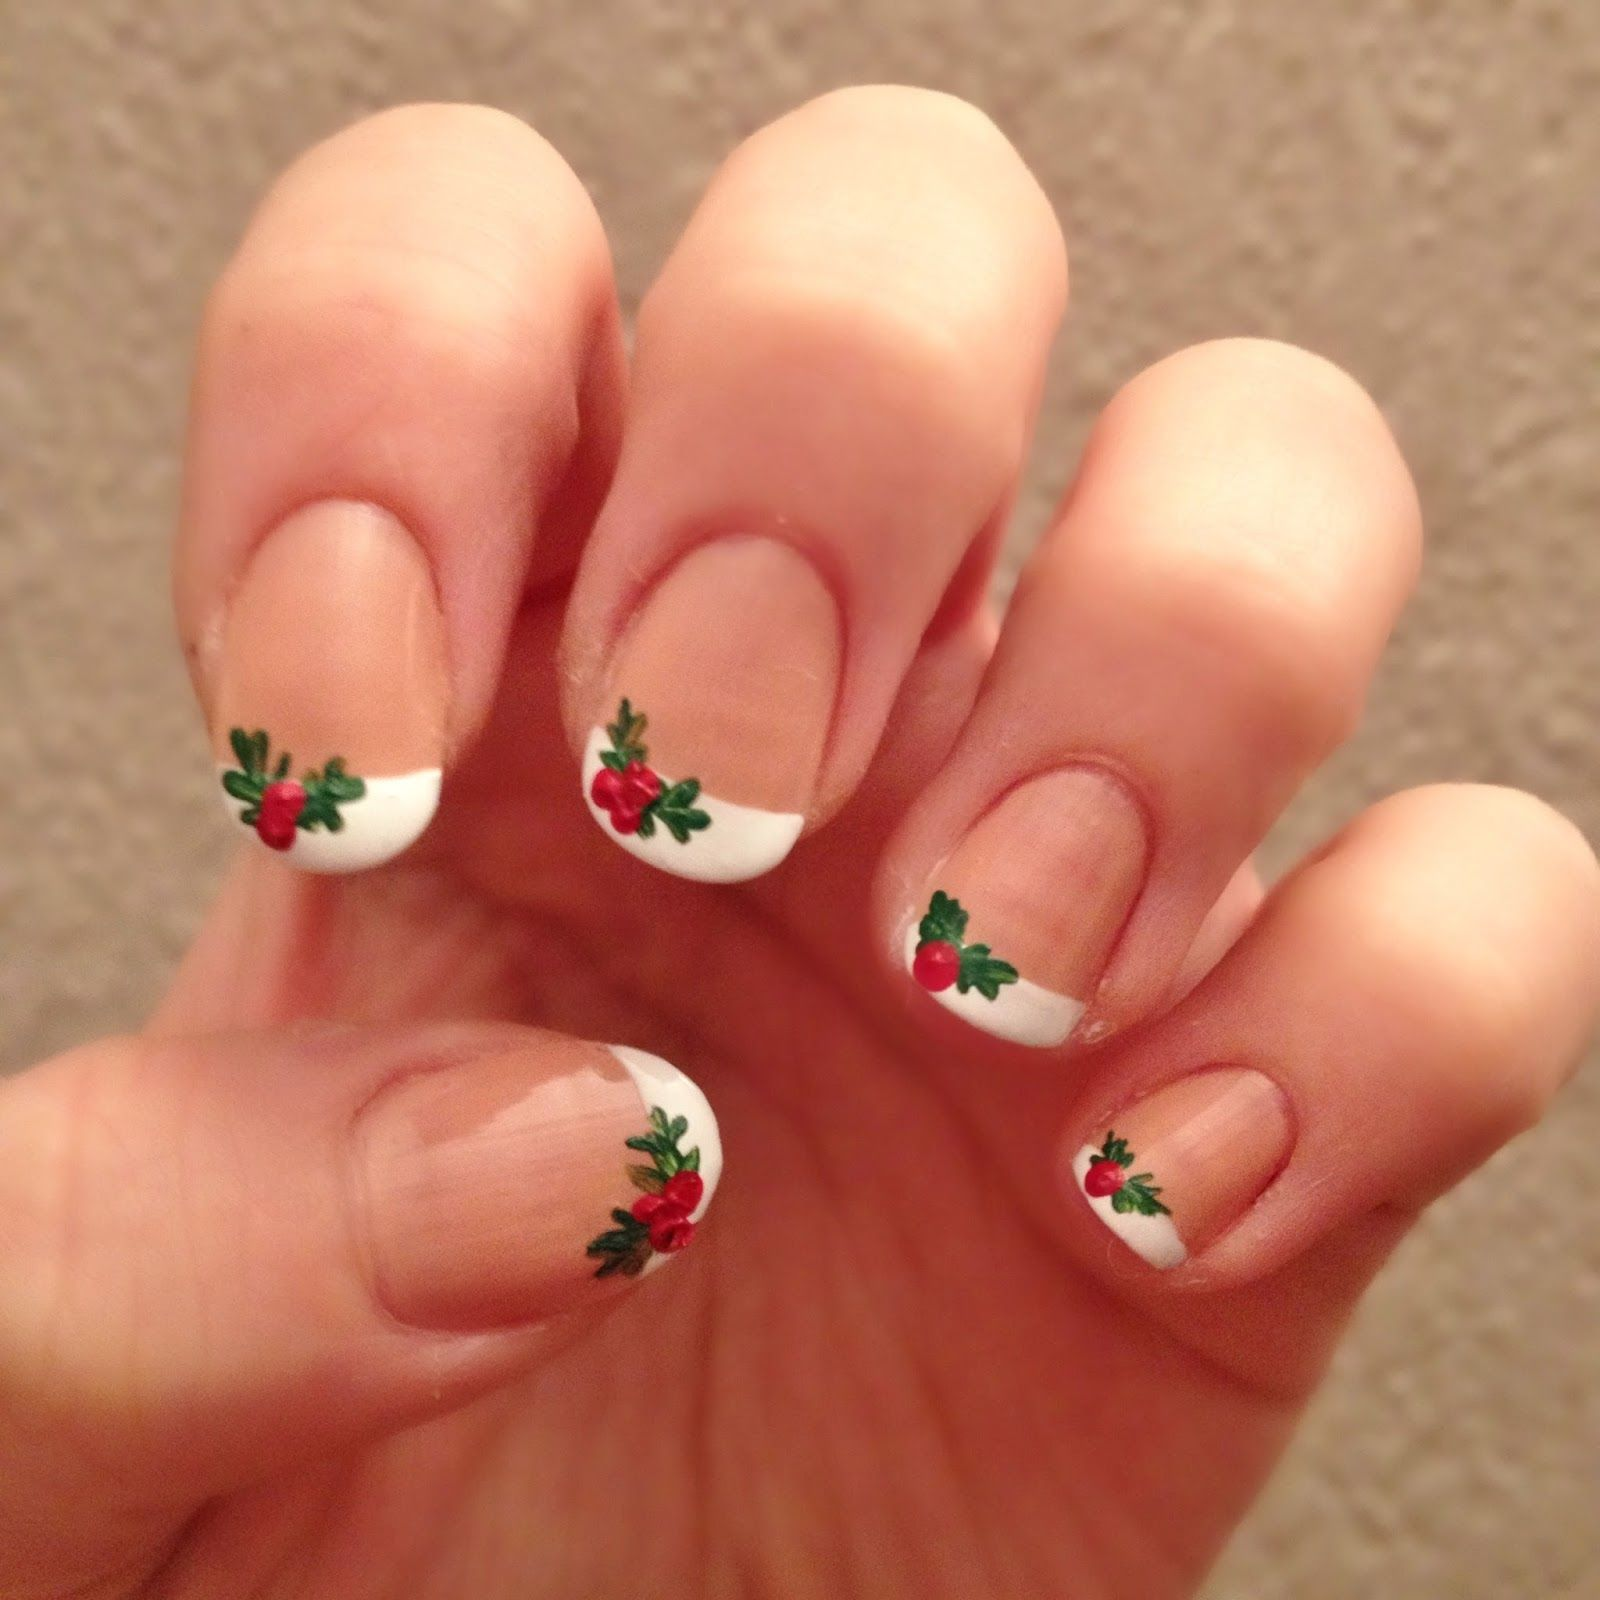 notd series: no.3 french holly | manicure and manicure ideas